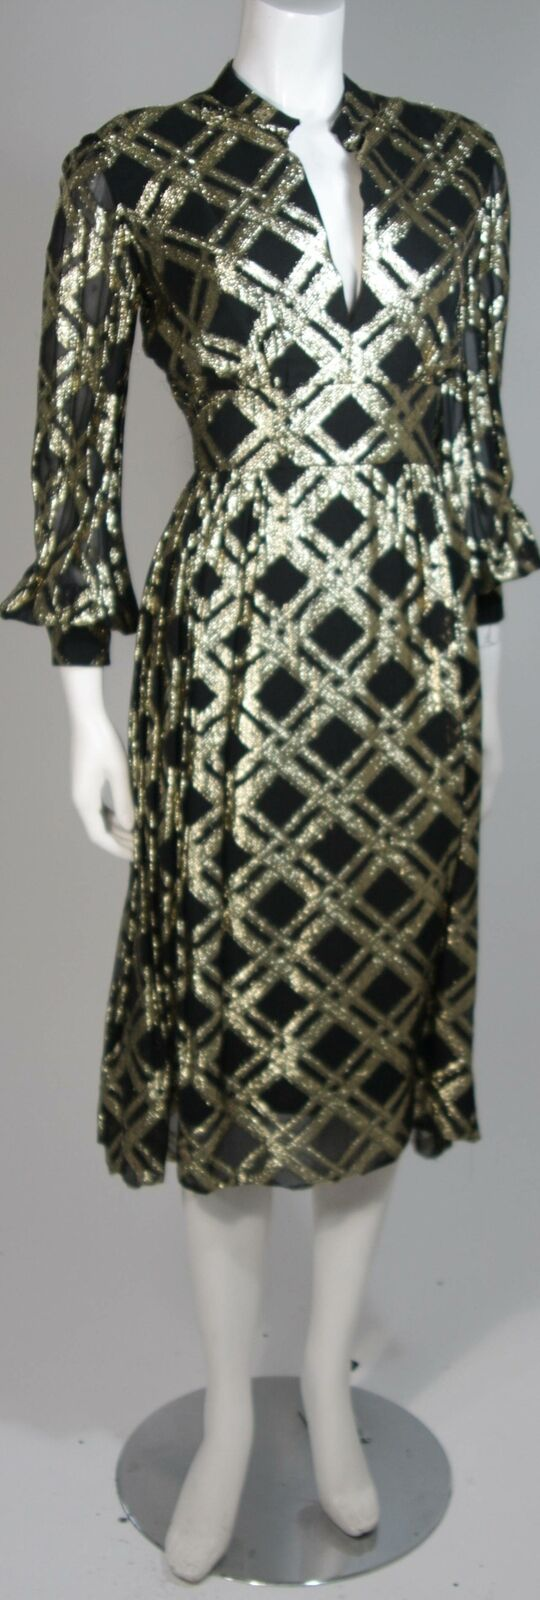 CEIL CHAPMAN Black Silk and Gold Cocktail Dress S… - image 4